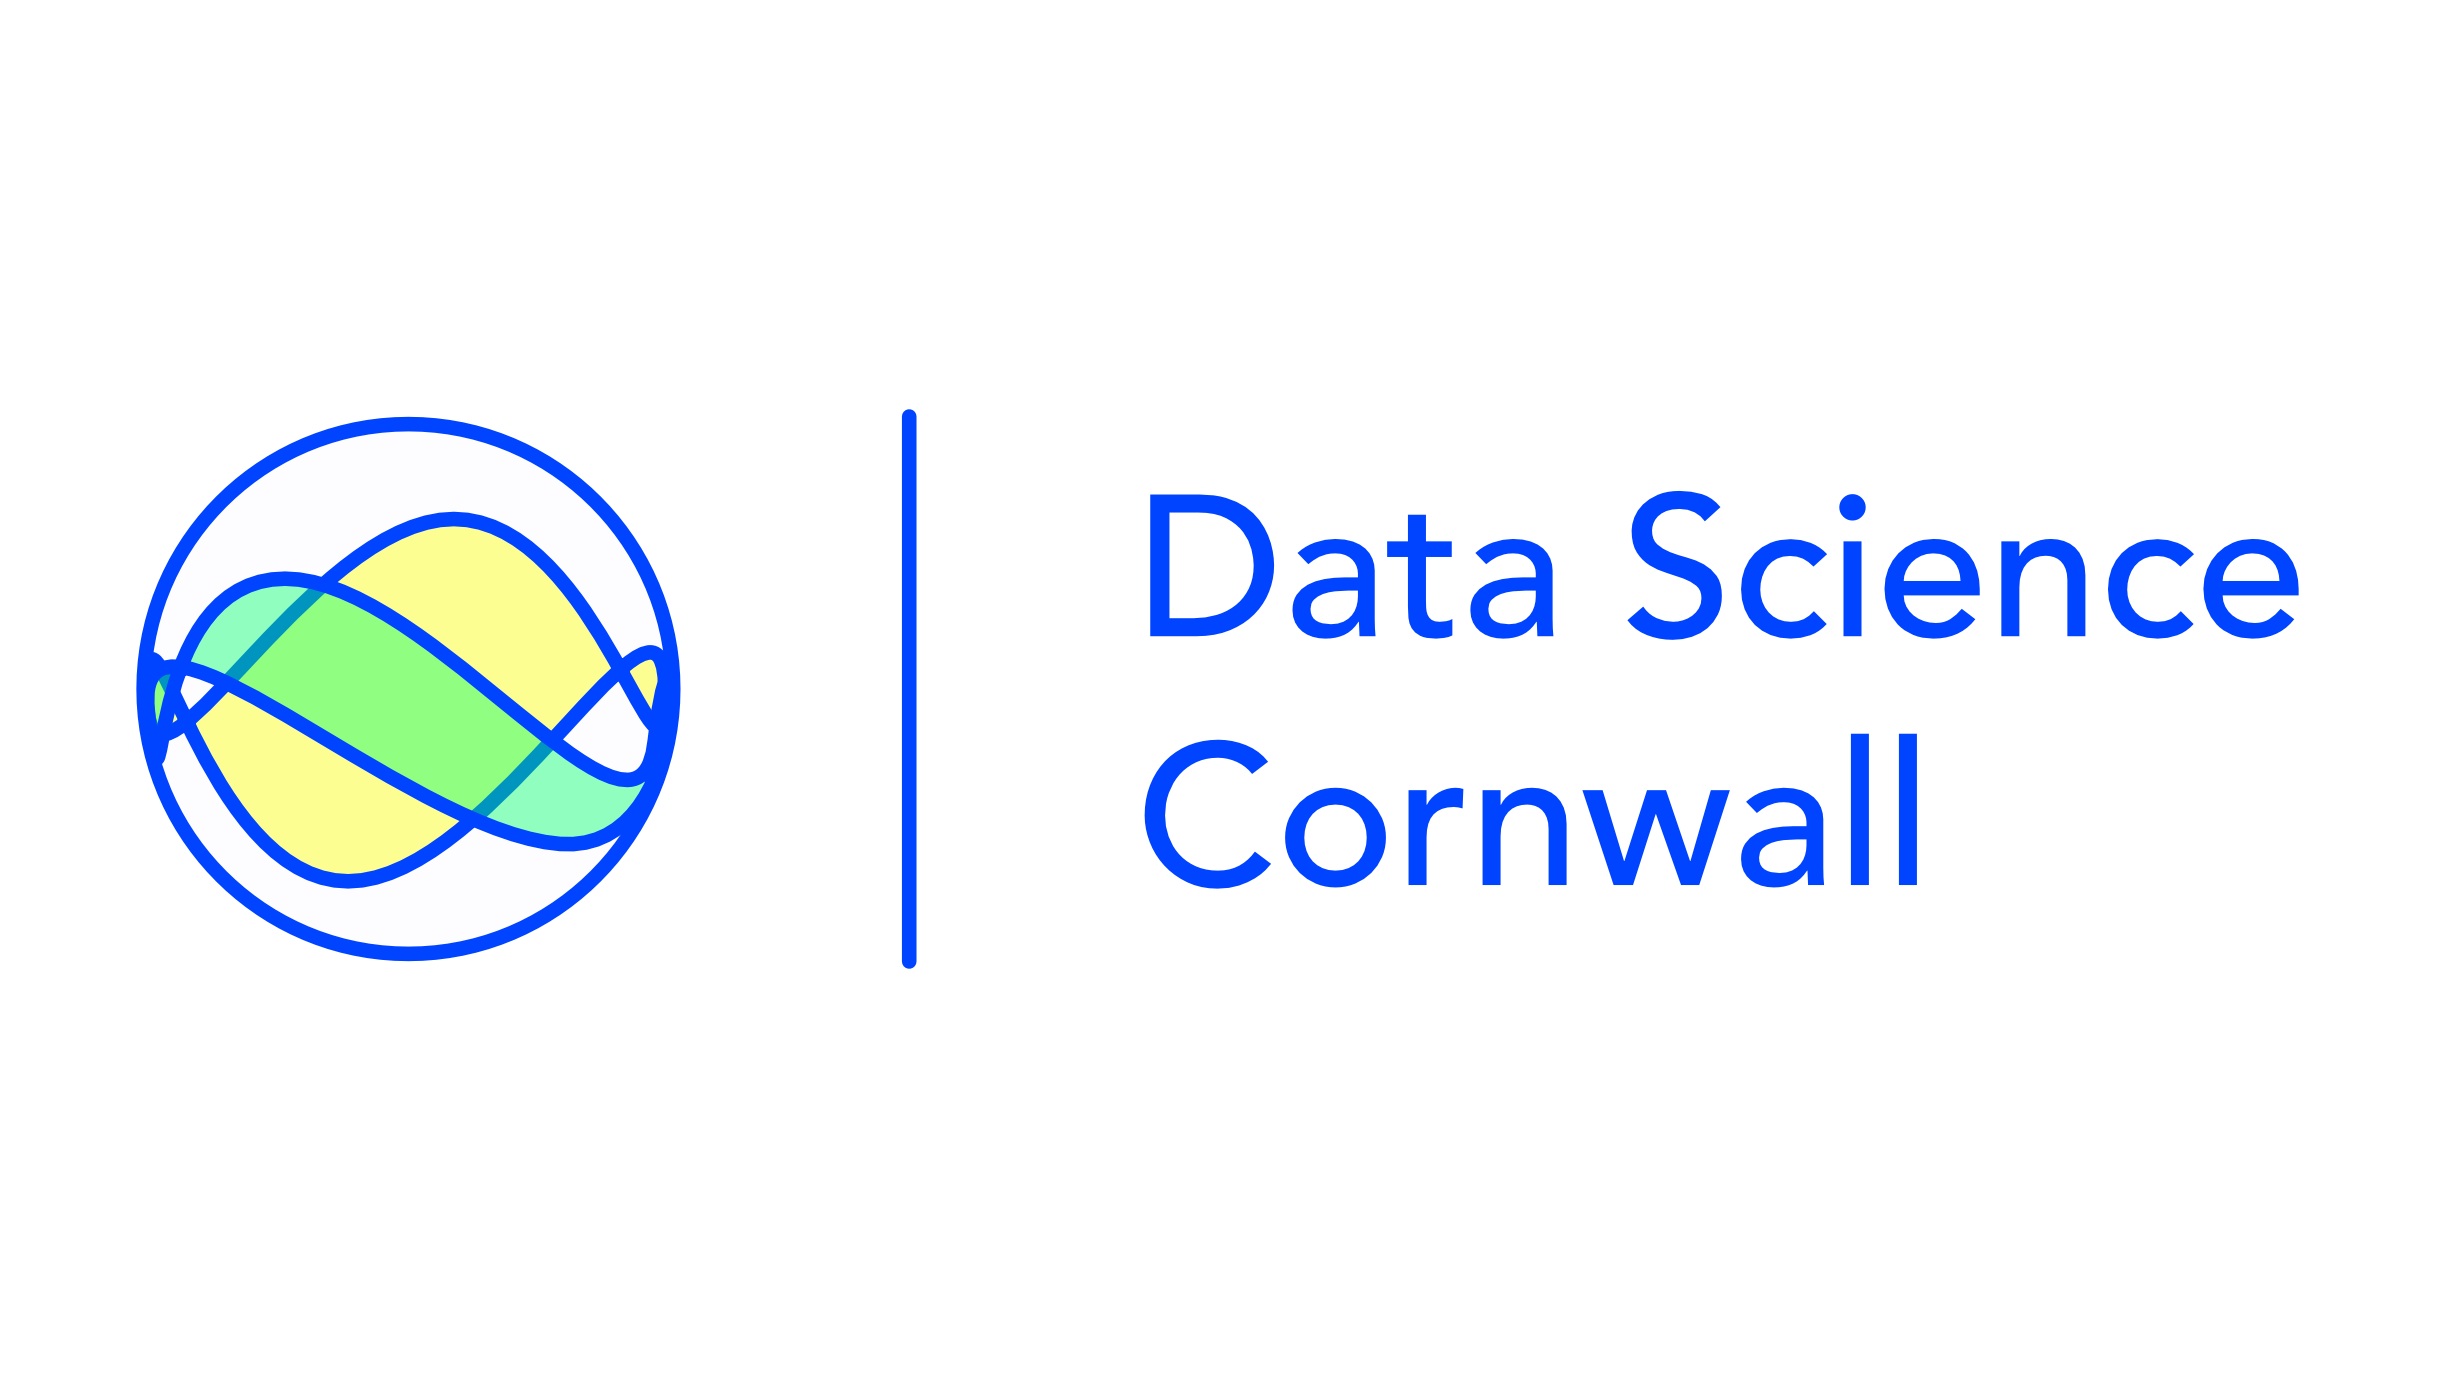 Data Science Cornwall